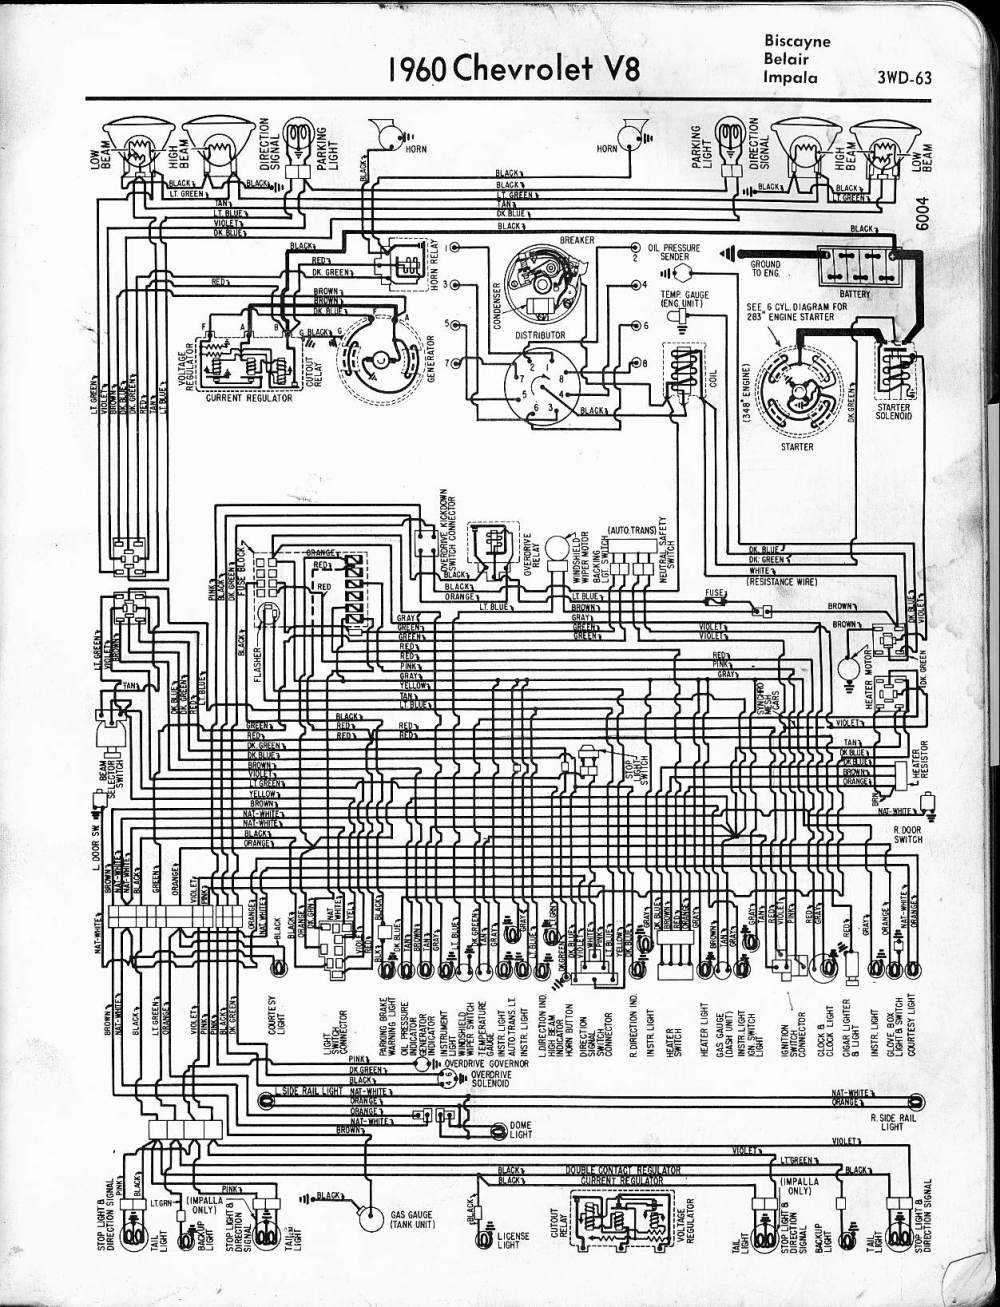 medium resolution of 1960 chevrolet wiring diagrams v8 and l6 engines 1963 impala wiring diagram wiring diagram for 1960 chevy impala